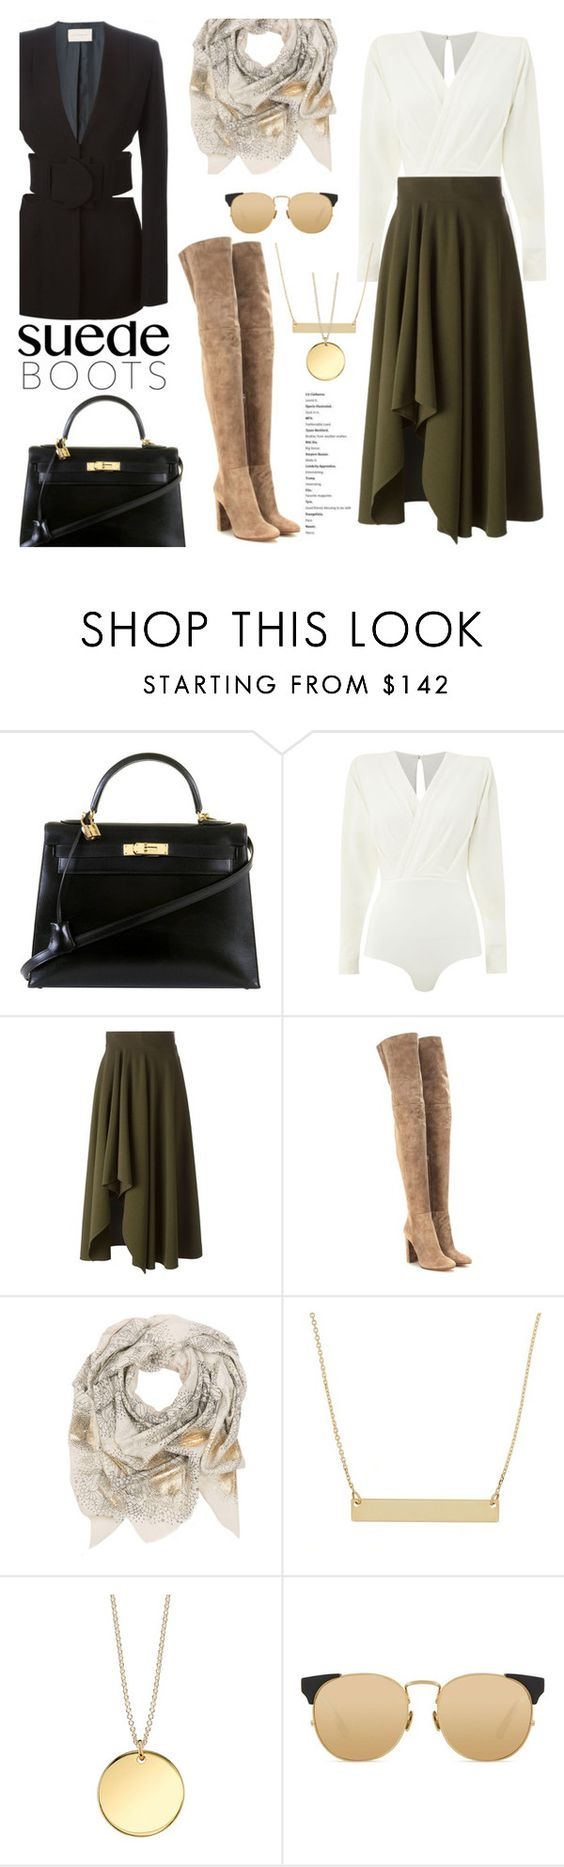 """""""Suede Boots"""" by stellaasteria ❤ liked on Polyvore featuring Hermès, Alexander McQueen, Gianvito Rossi, Sophie Darling, Linda Farrow and Christopher Kane"""